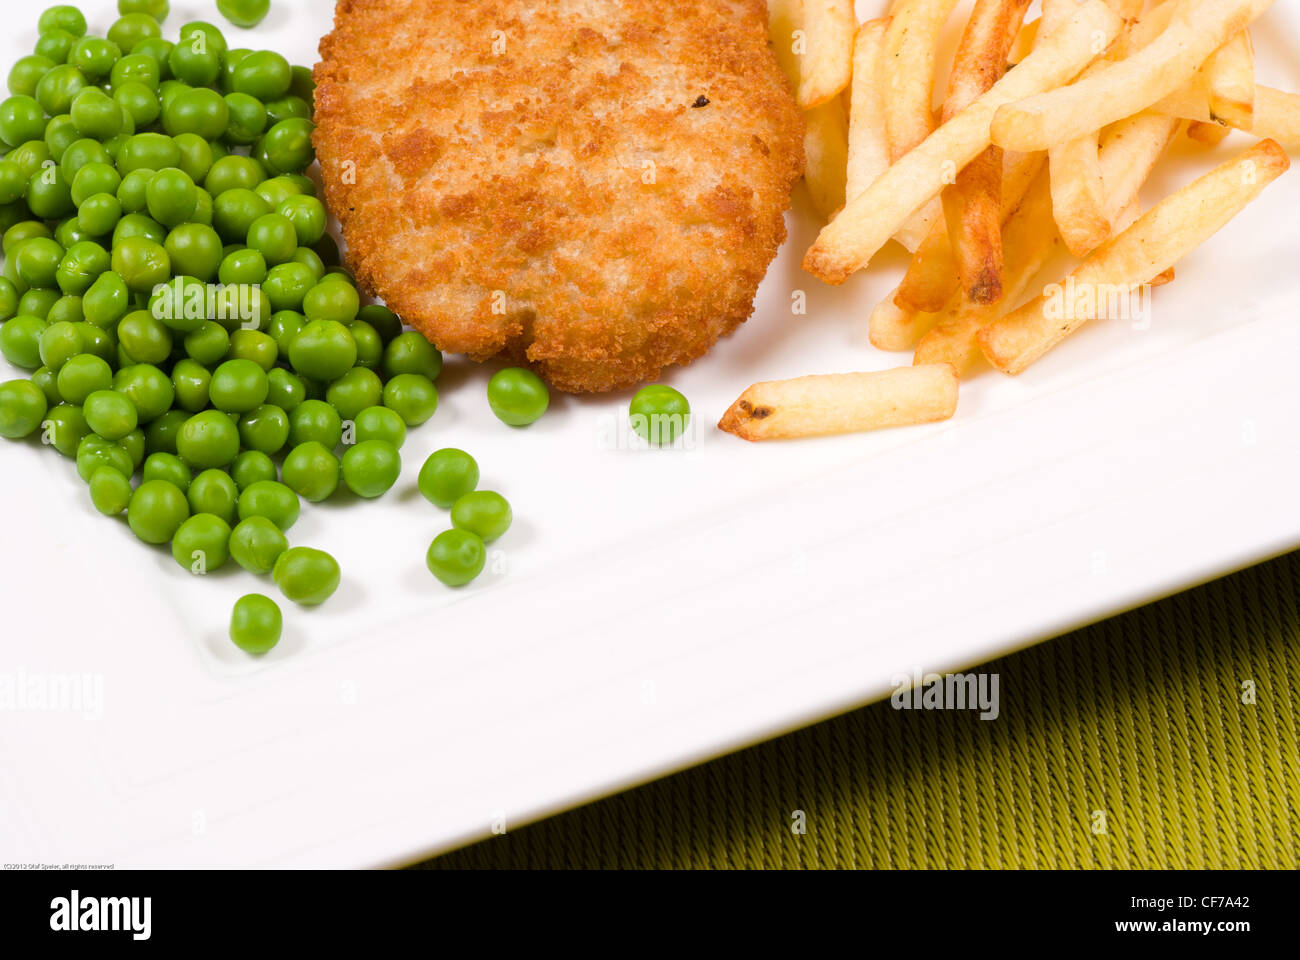 Fish and chips, battered hake with garnish - Stock Image